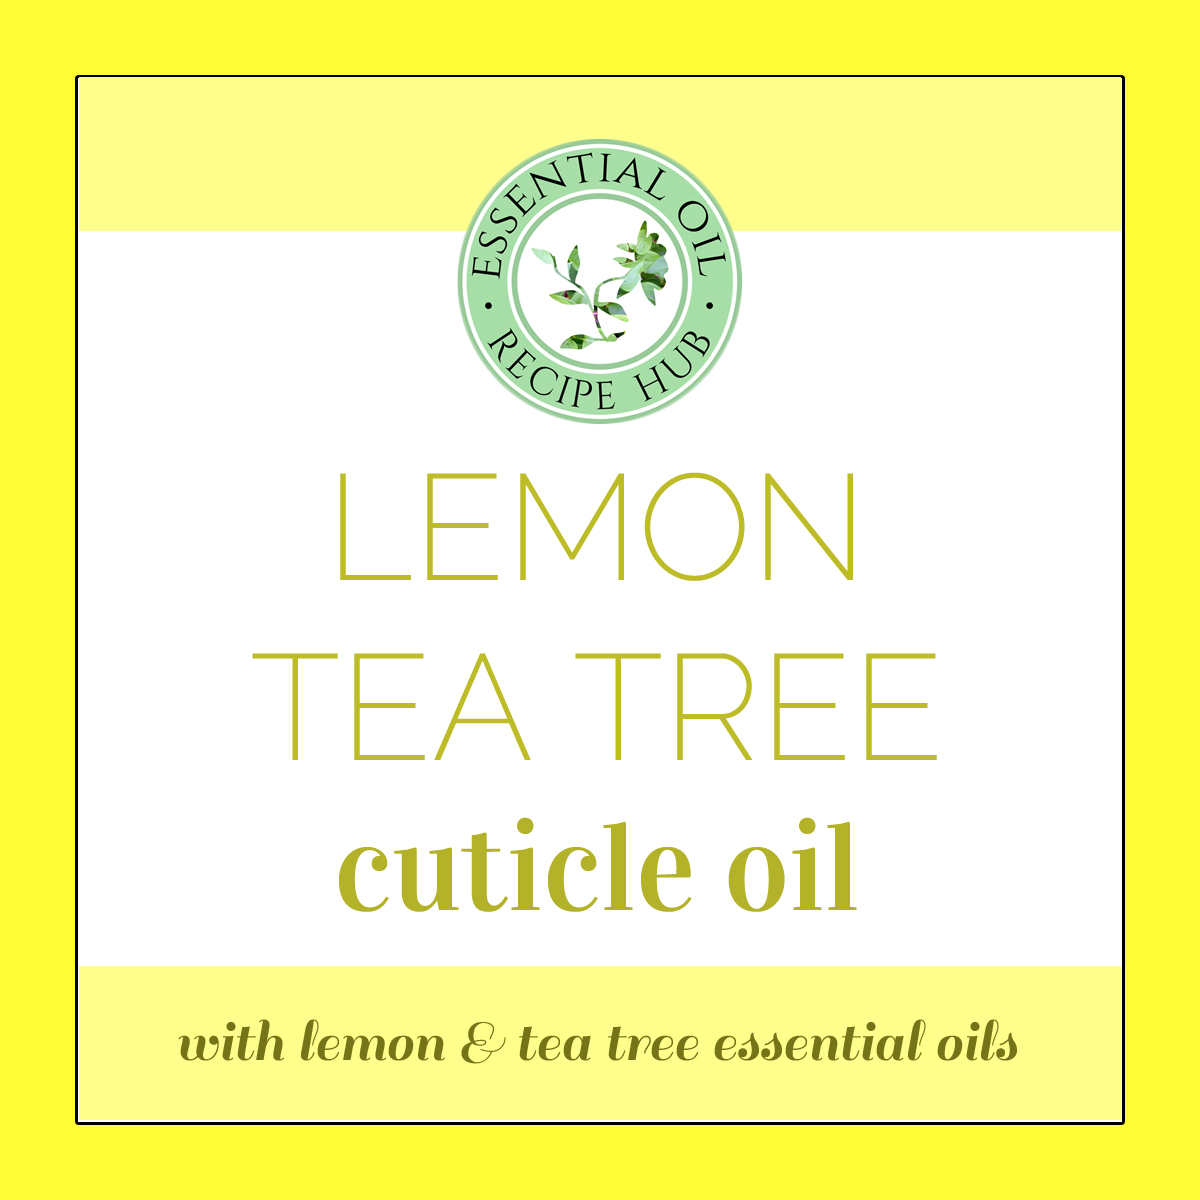 lemon tea tree cuticle oil